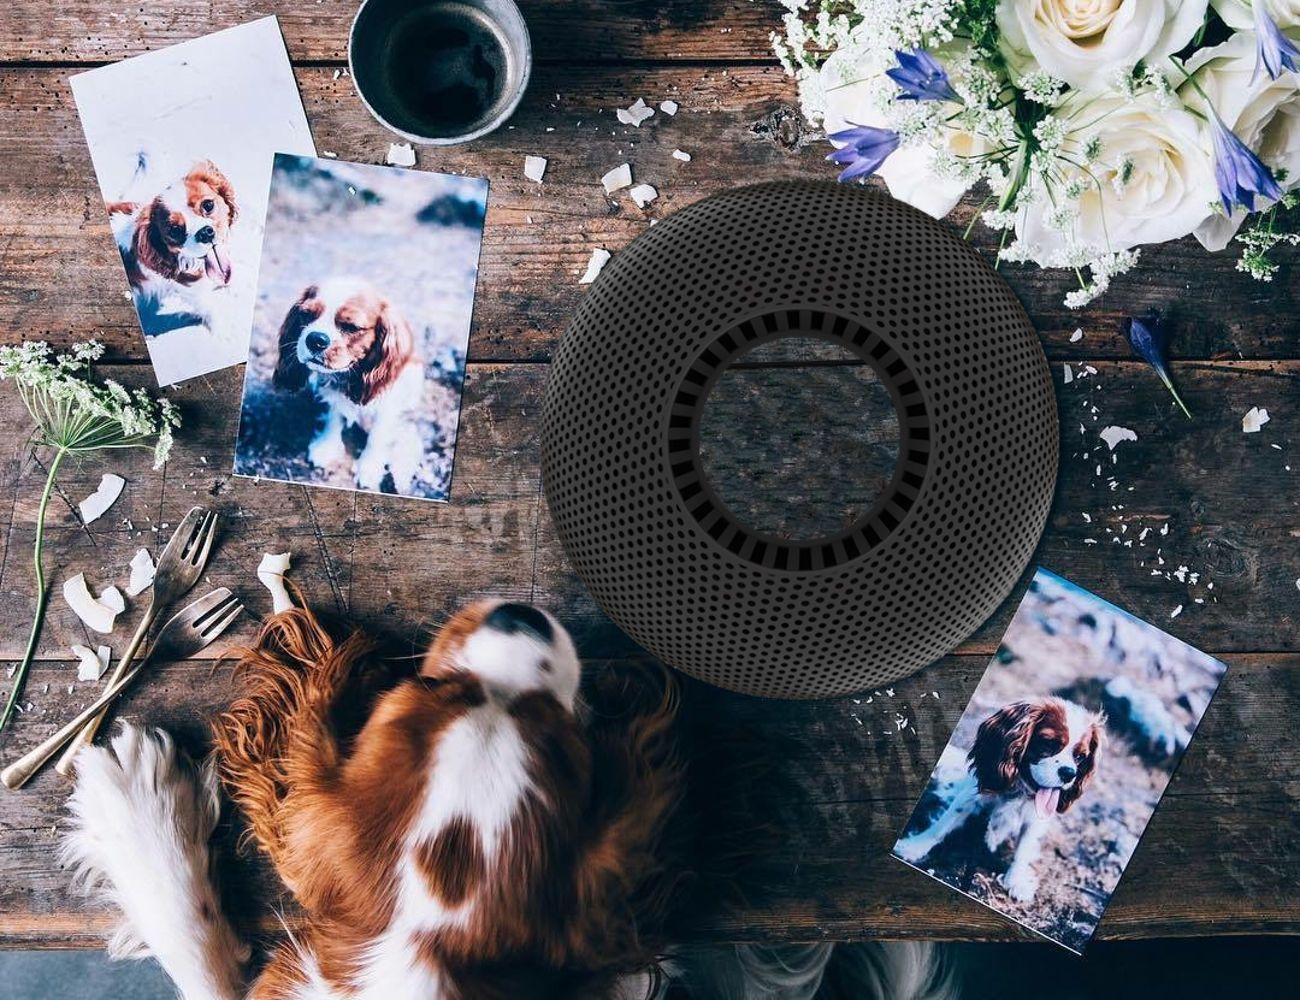 ORION360 AI-Powered Speaker System with ATMOS